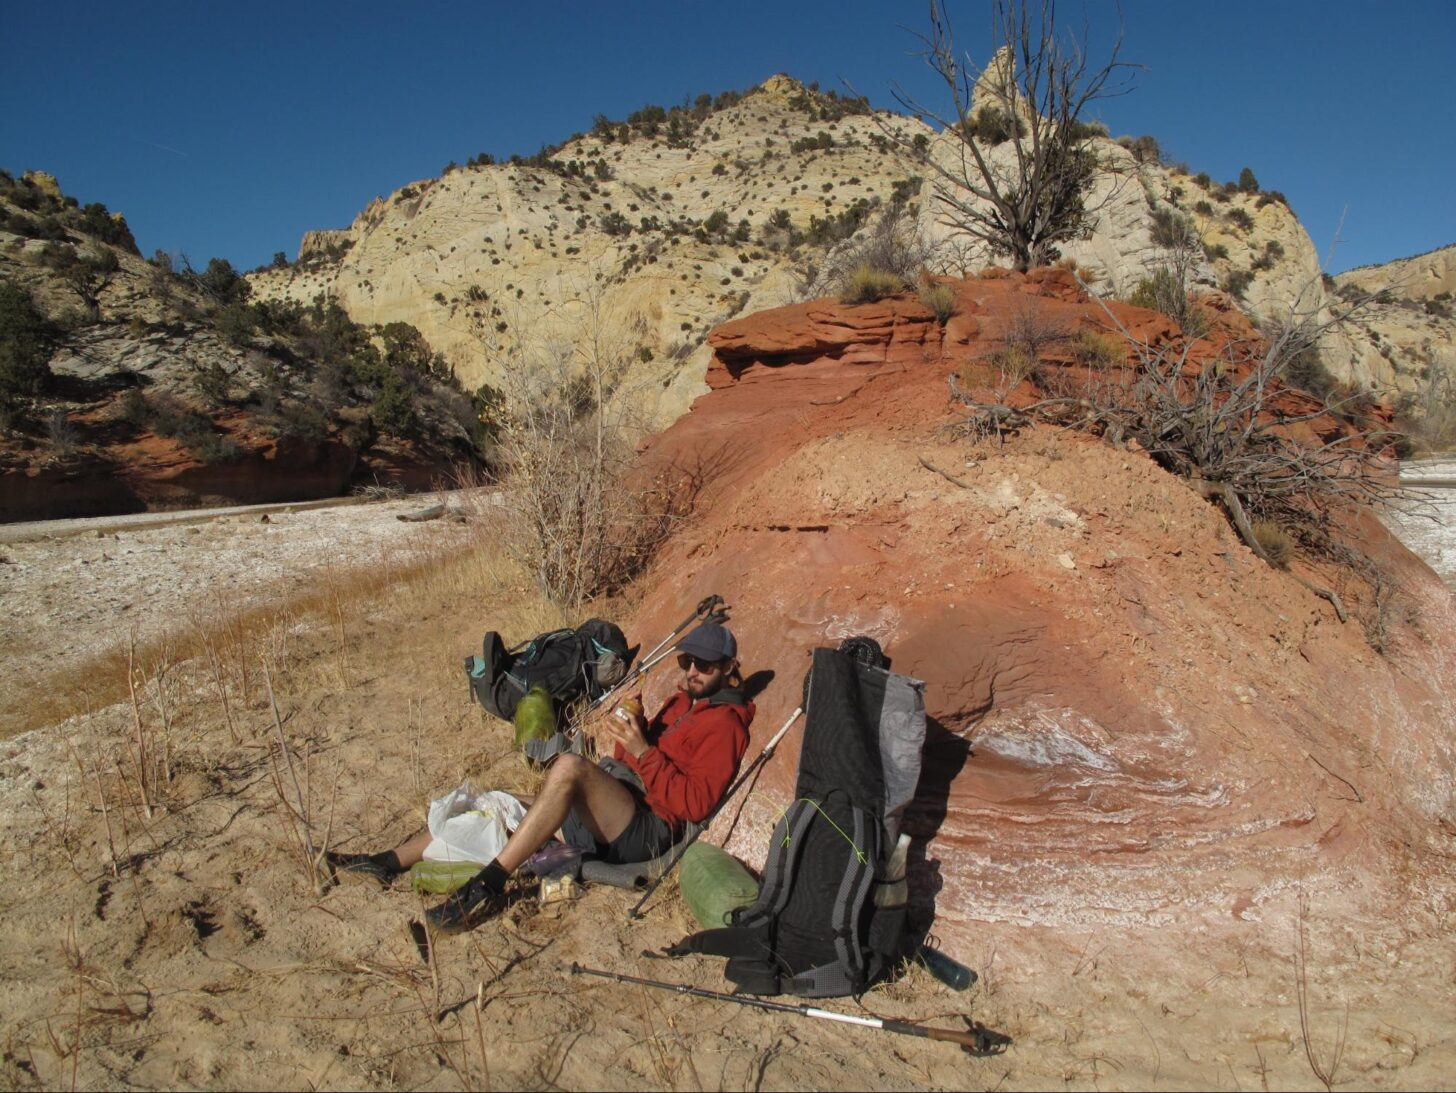 Lunch at the confluence of Sheep Creek and the Paria River.